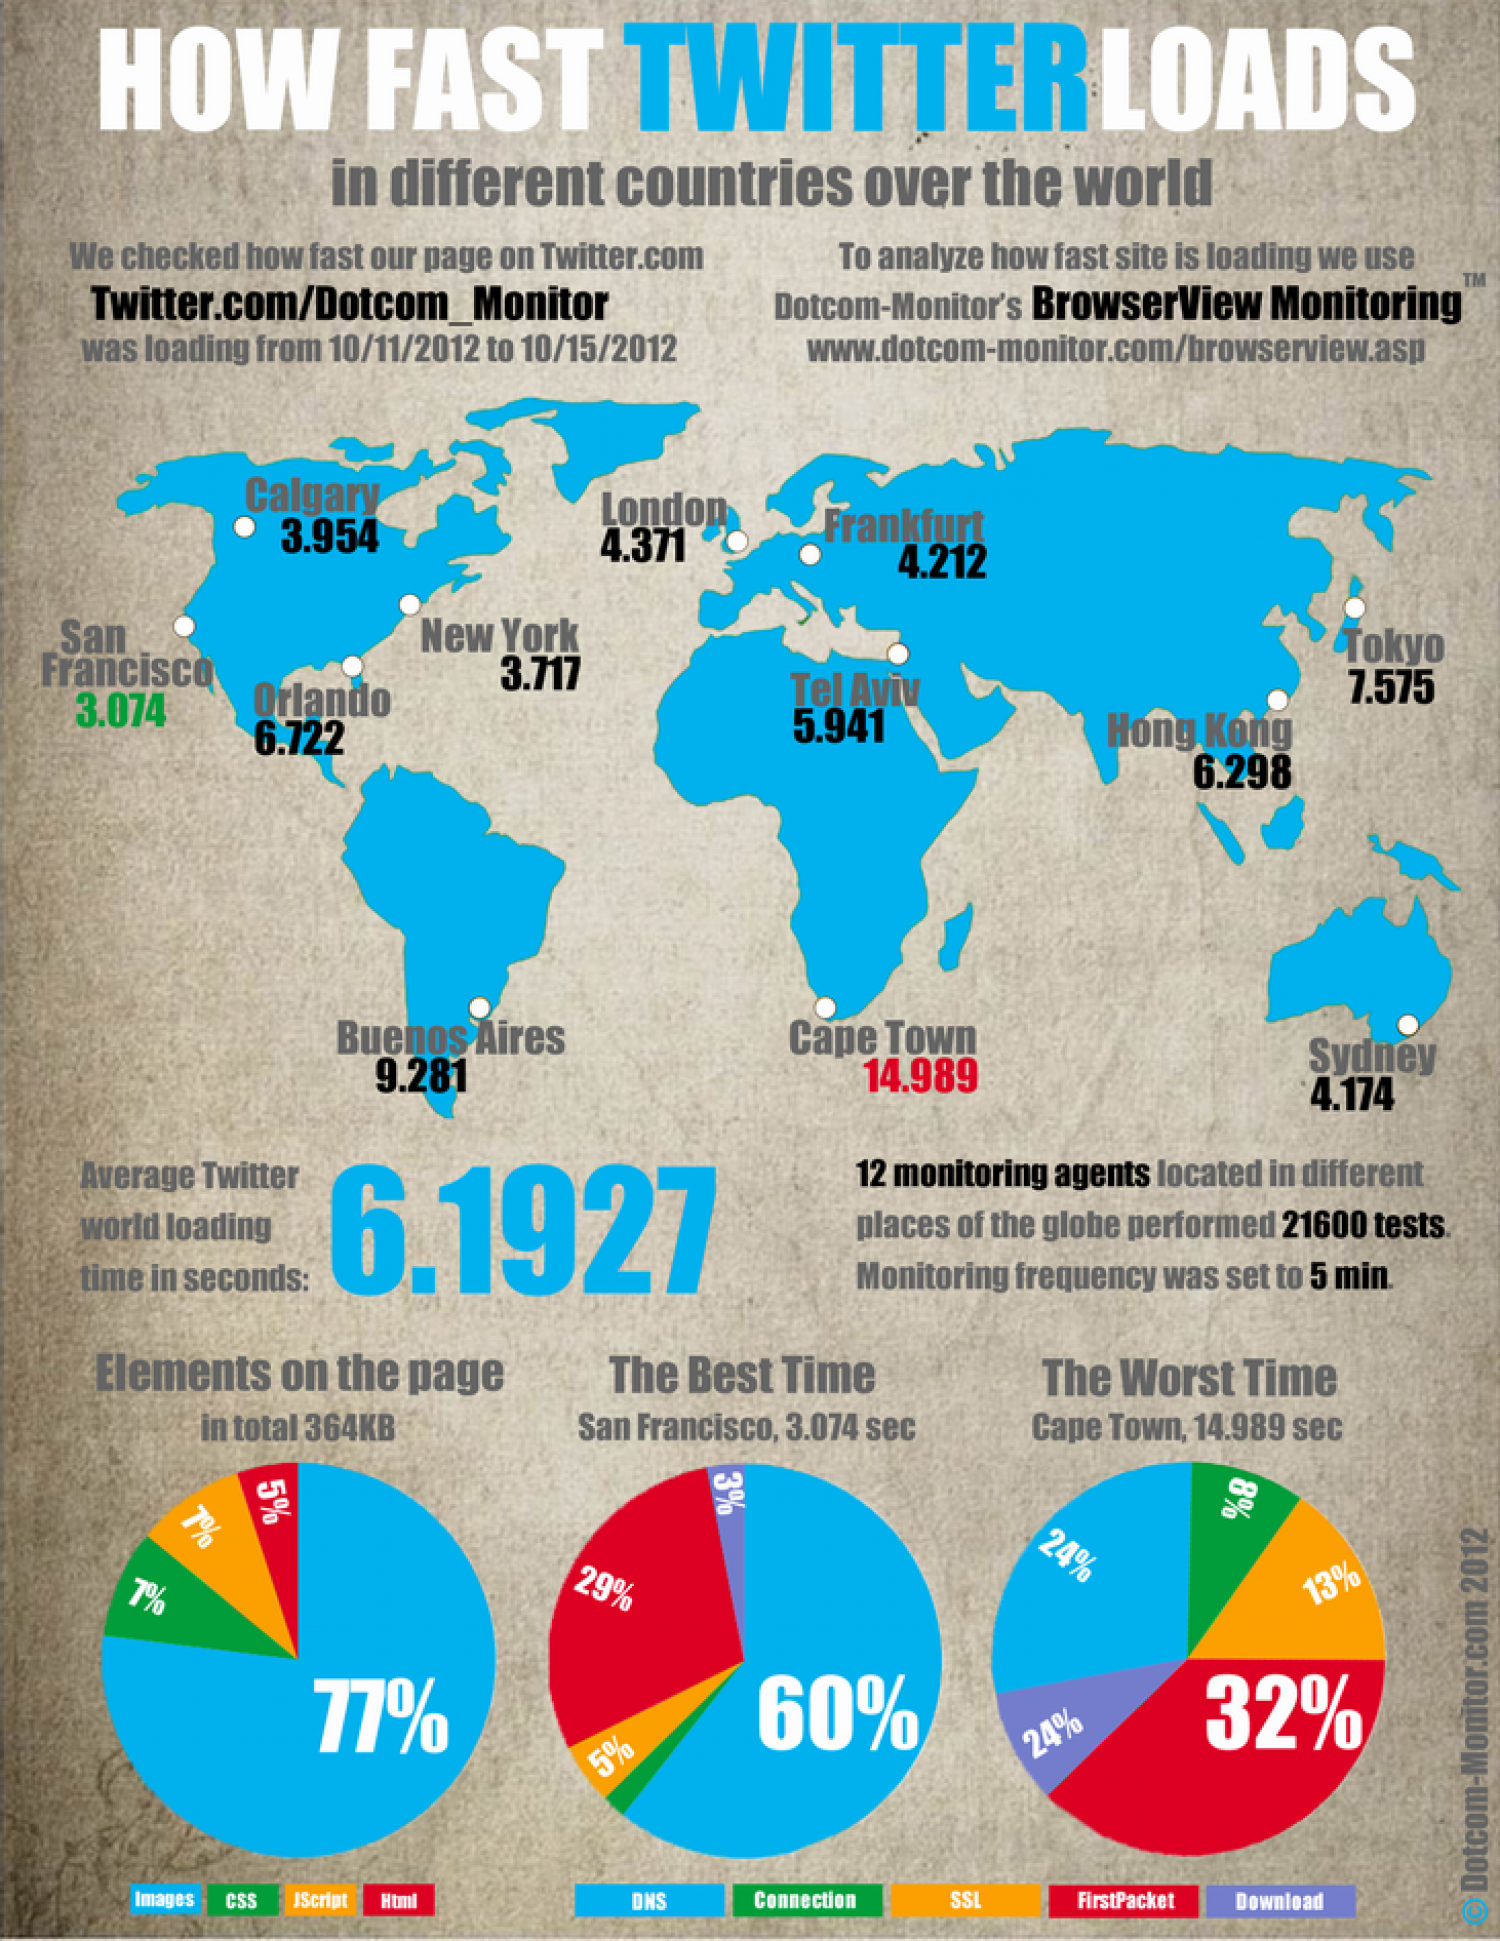 How Twitter page loads in different countries over the world Infographic